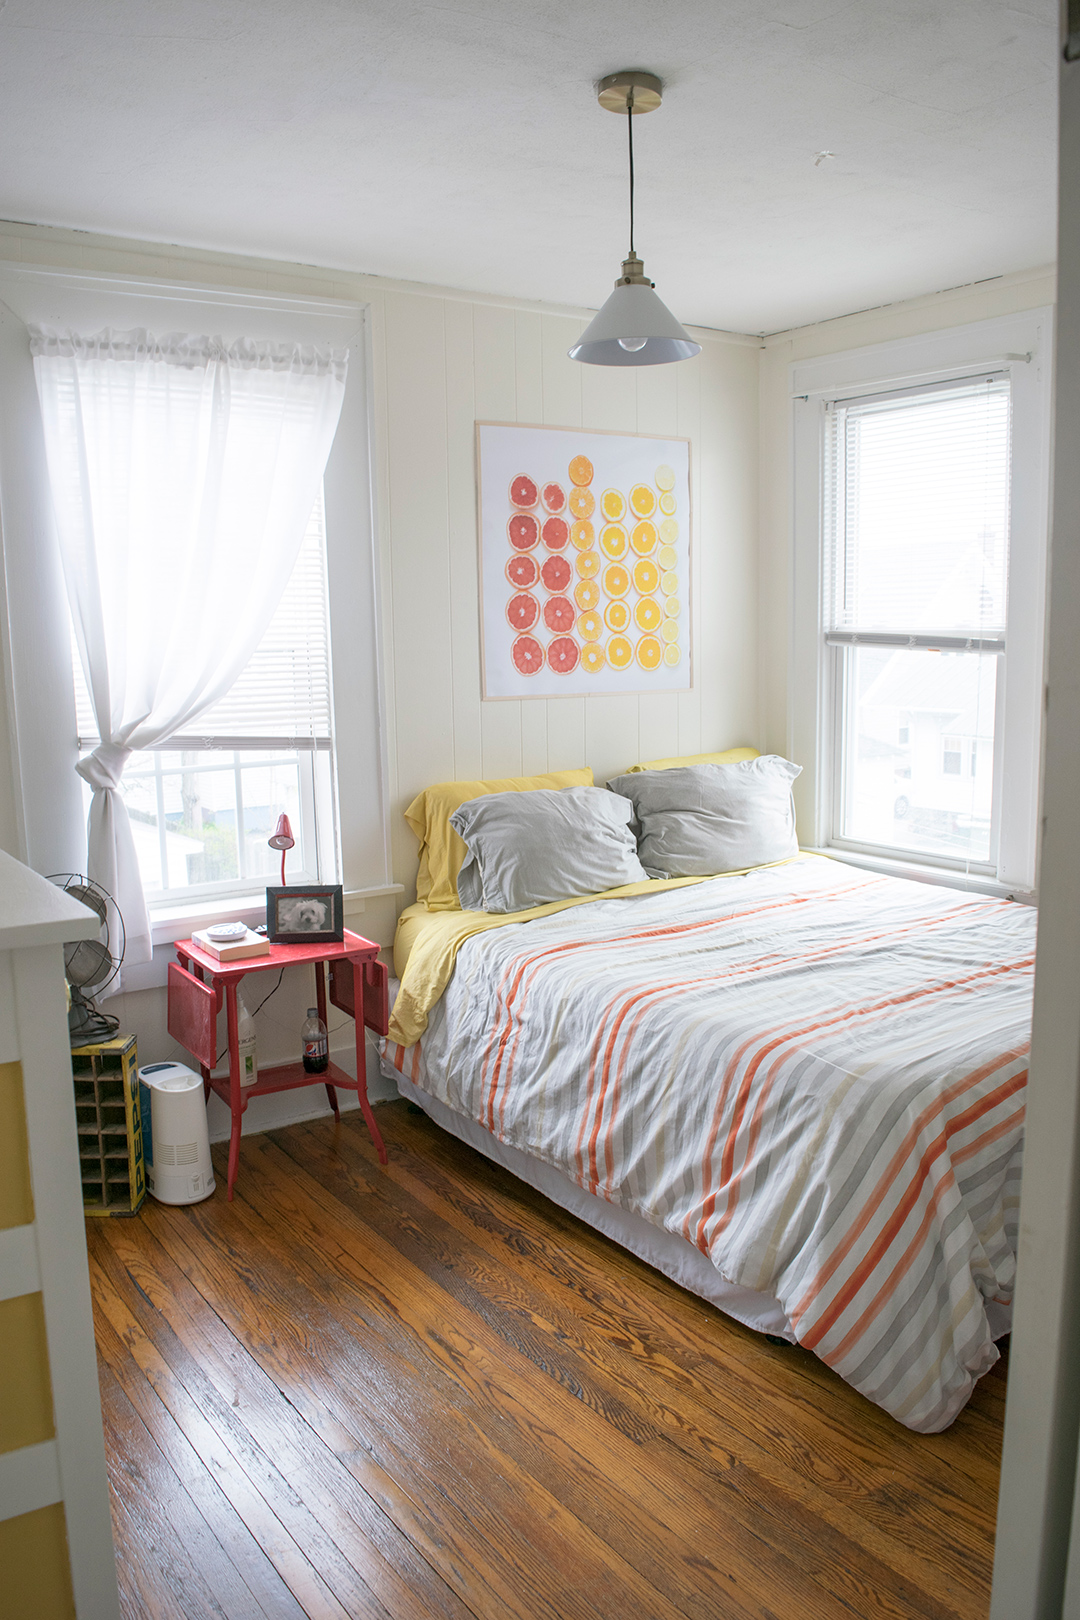 Apartment Must Haves: 3-4 Electrical Outlets in Each Room